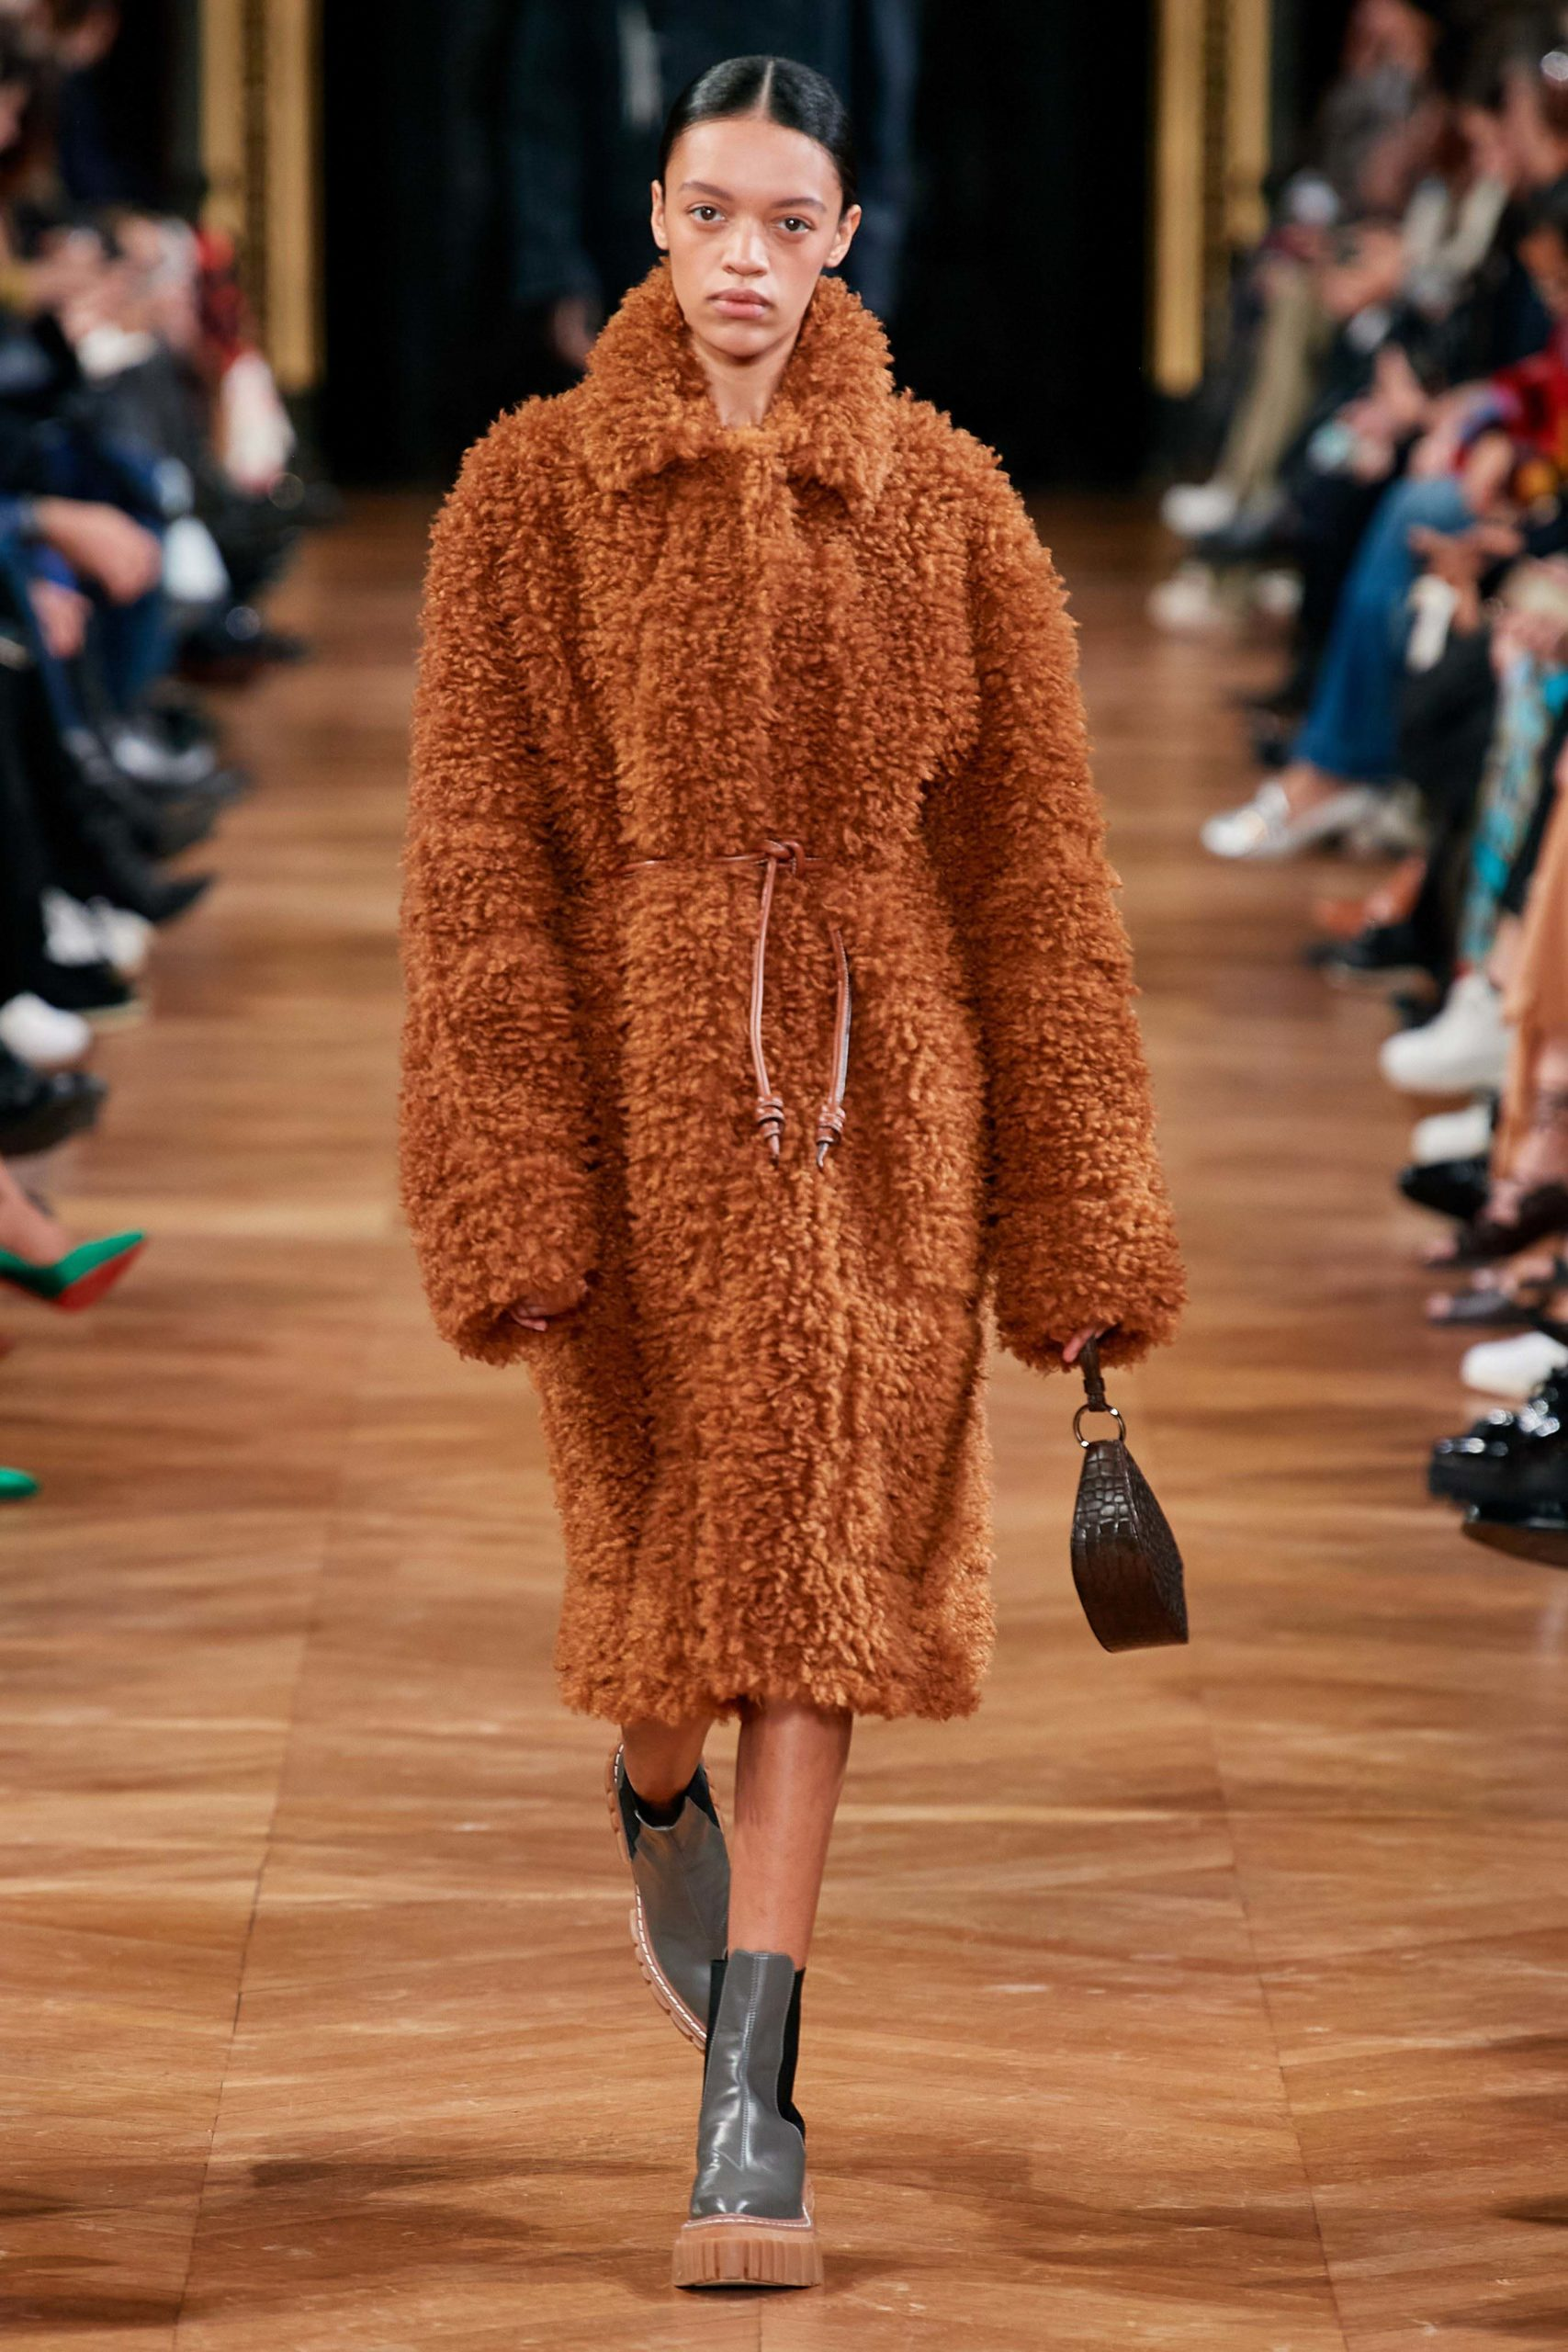 Stella McCartney Fall 2020 trends runway coverage Ready To Wear Vogue shaggy 2